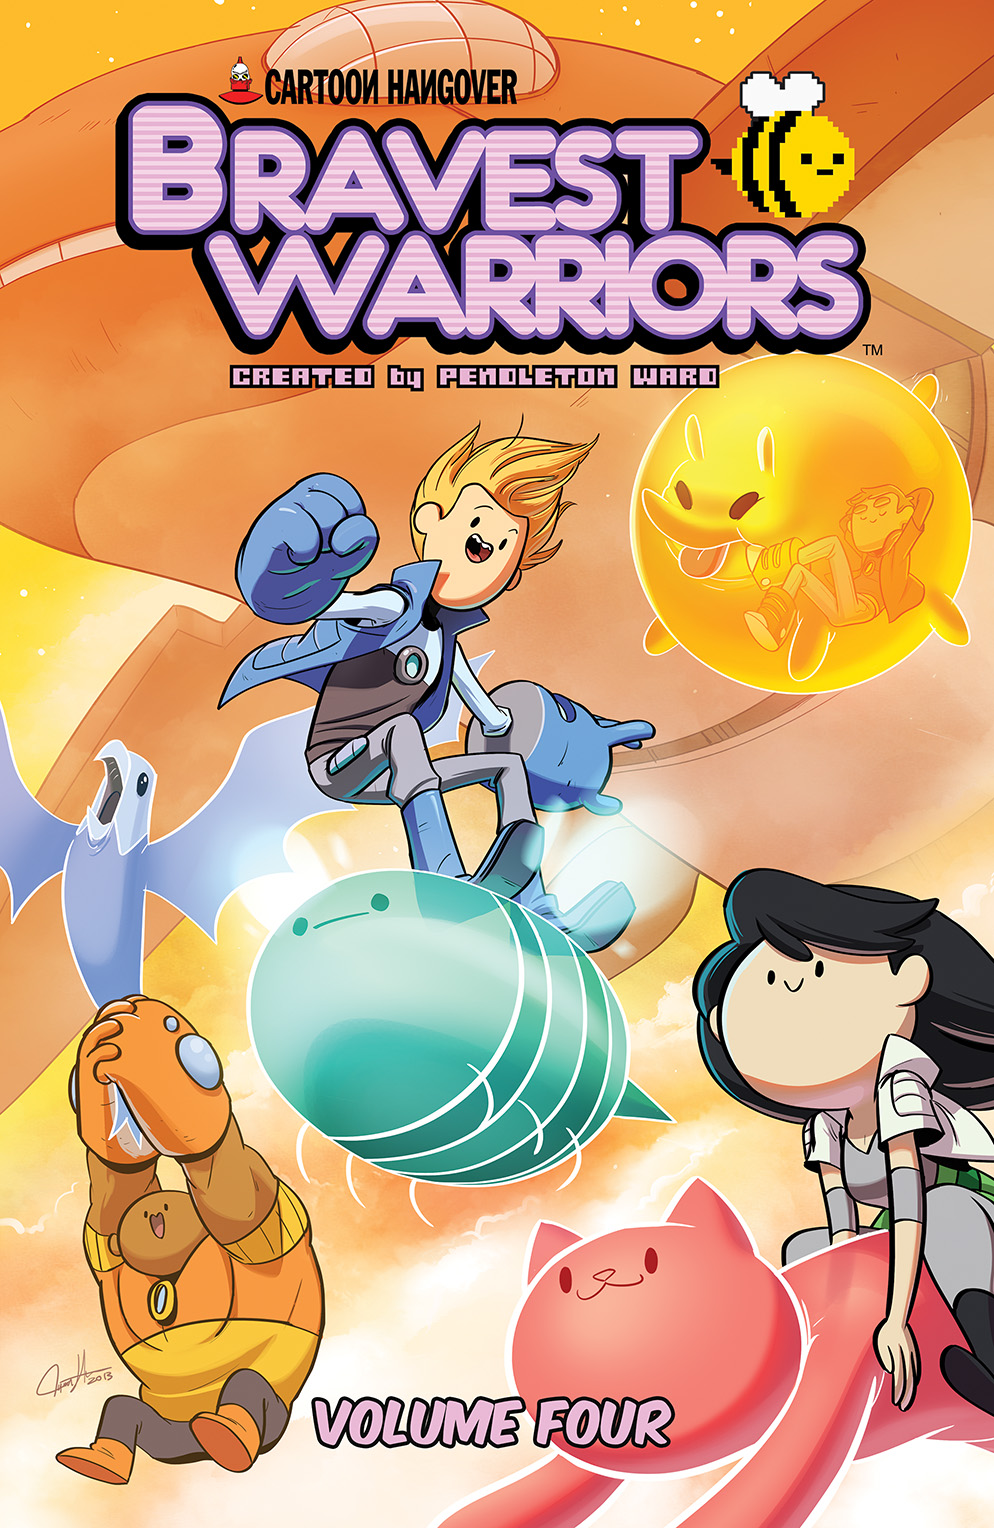 Bravest Warriors Vol. 4 TP Cover by Tyson Hesse